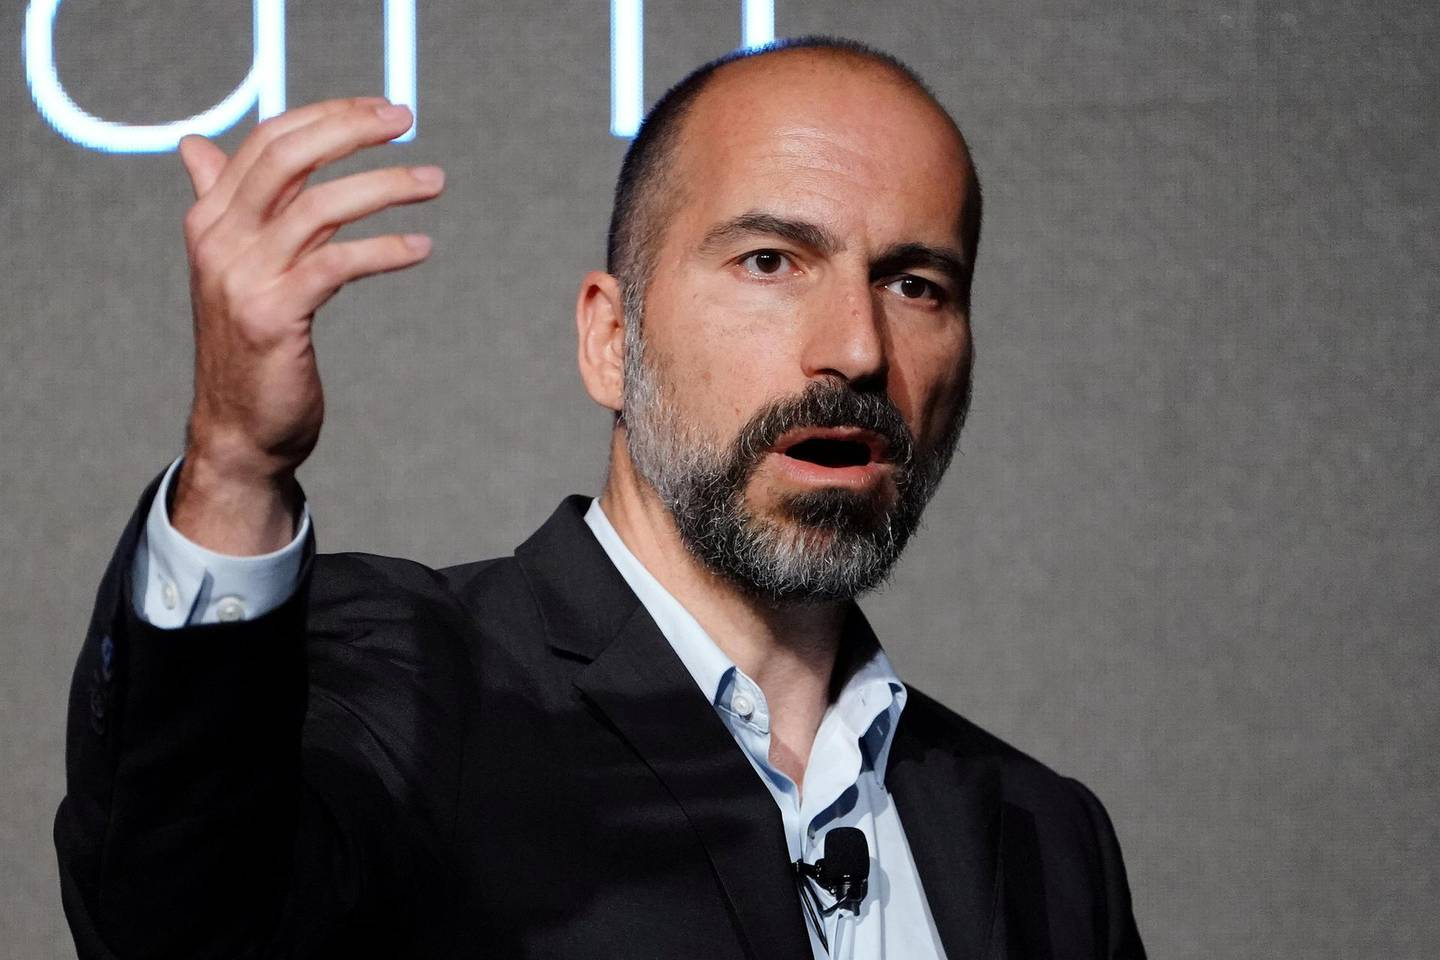 FILE PHOTO: Uber Chief Executive Dara Khosrowshahi pictured on stage during an event in New York City, New York, U.S., September 5, 2018. REUTERS/Carlo Allegri/File Photo